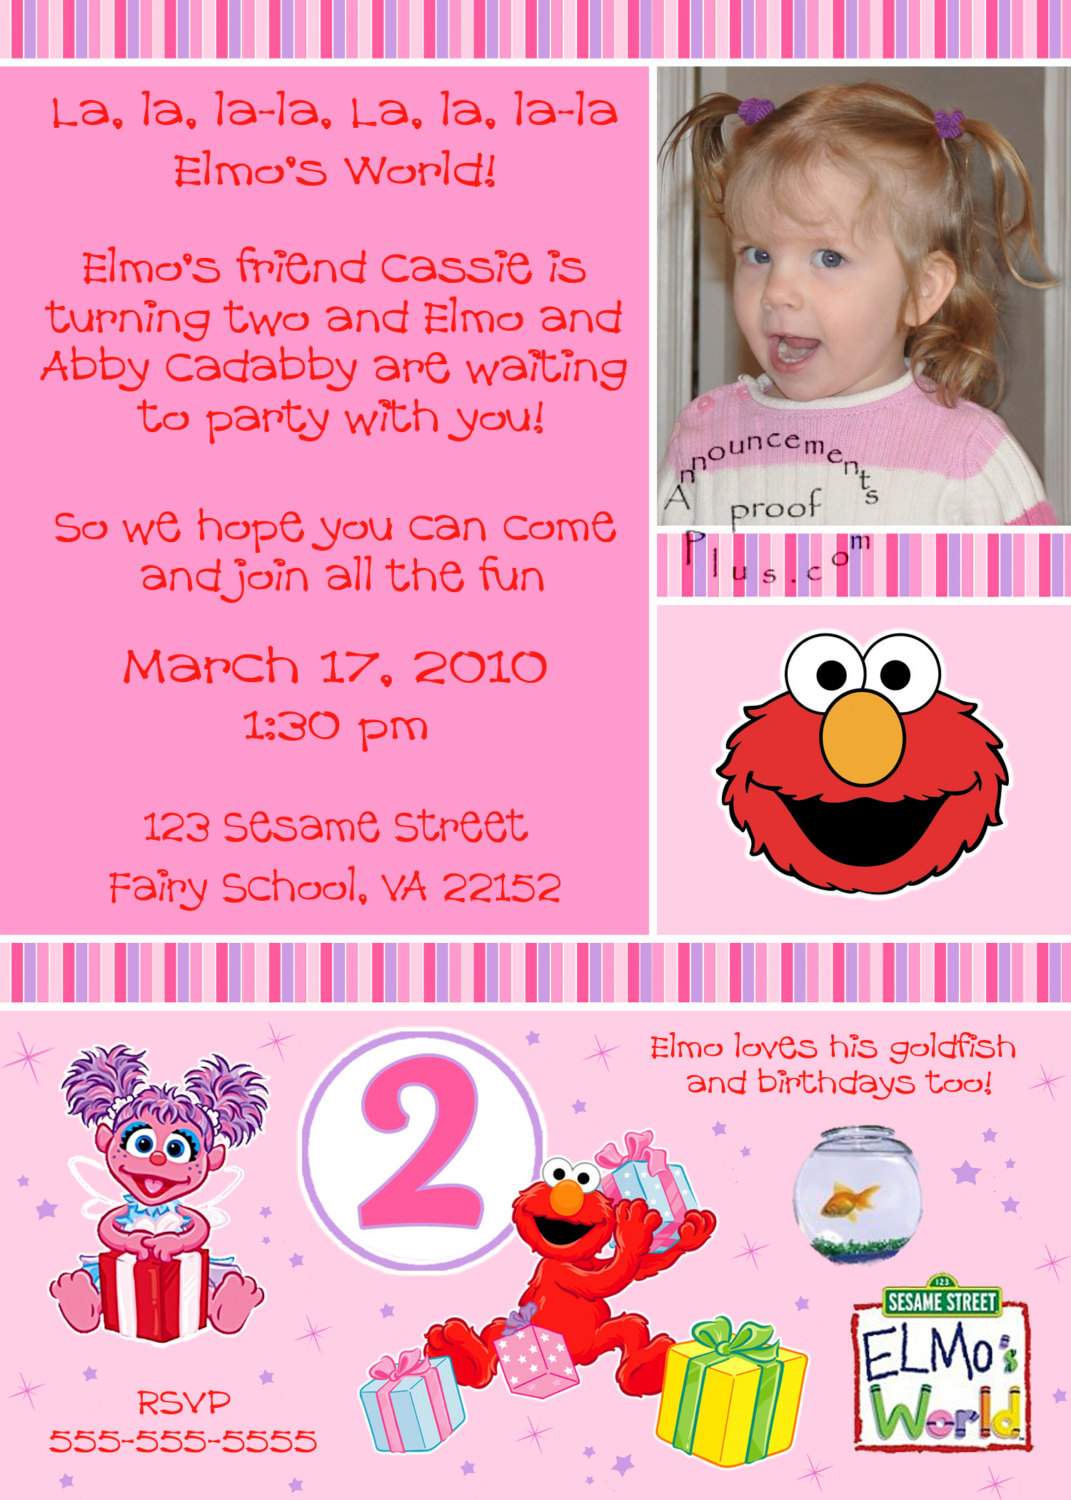 2nd birthday party invitation wording samples ; birthday__licious_2nd_birthday_invitations_wording_high_resolution_5